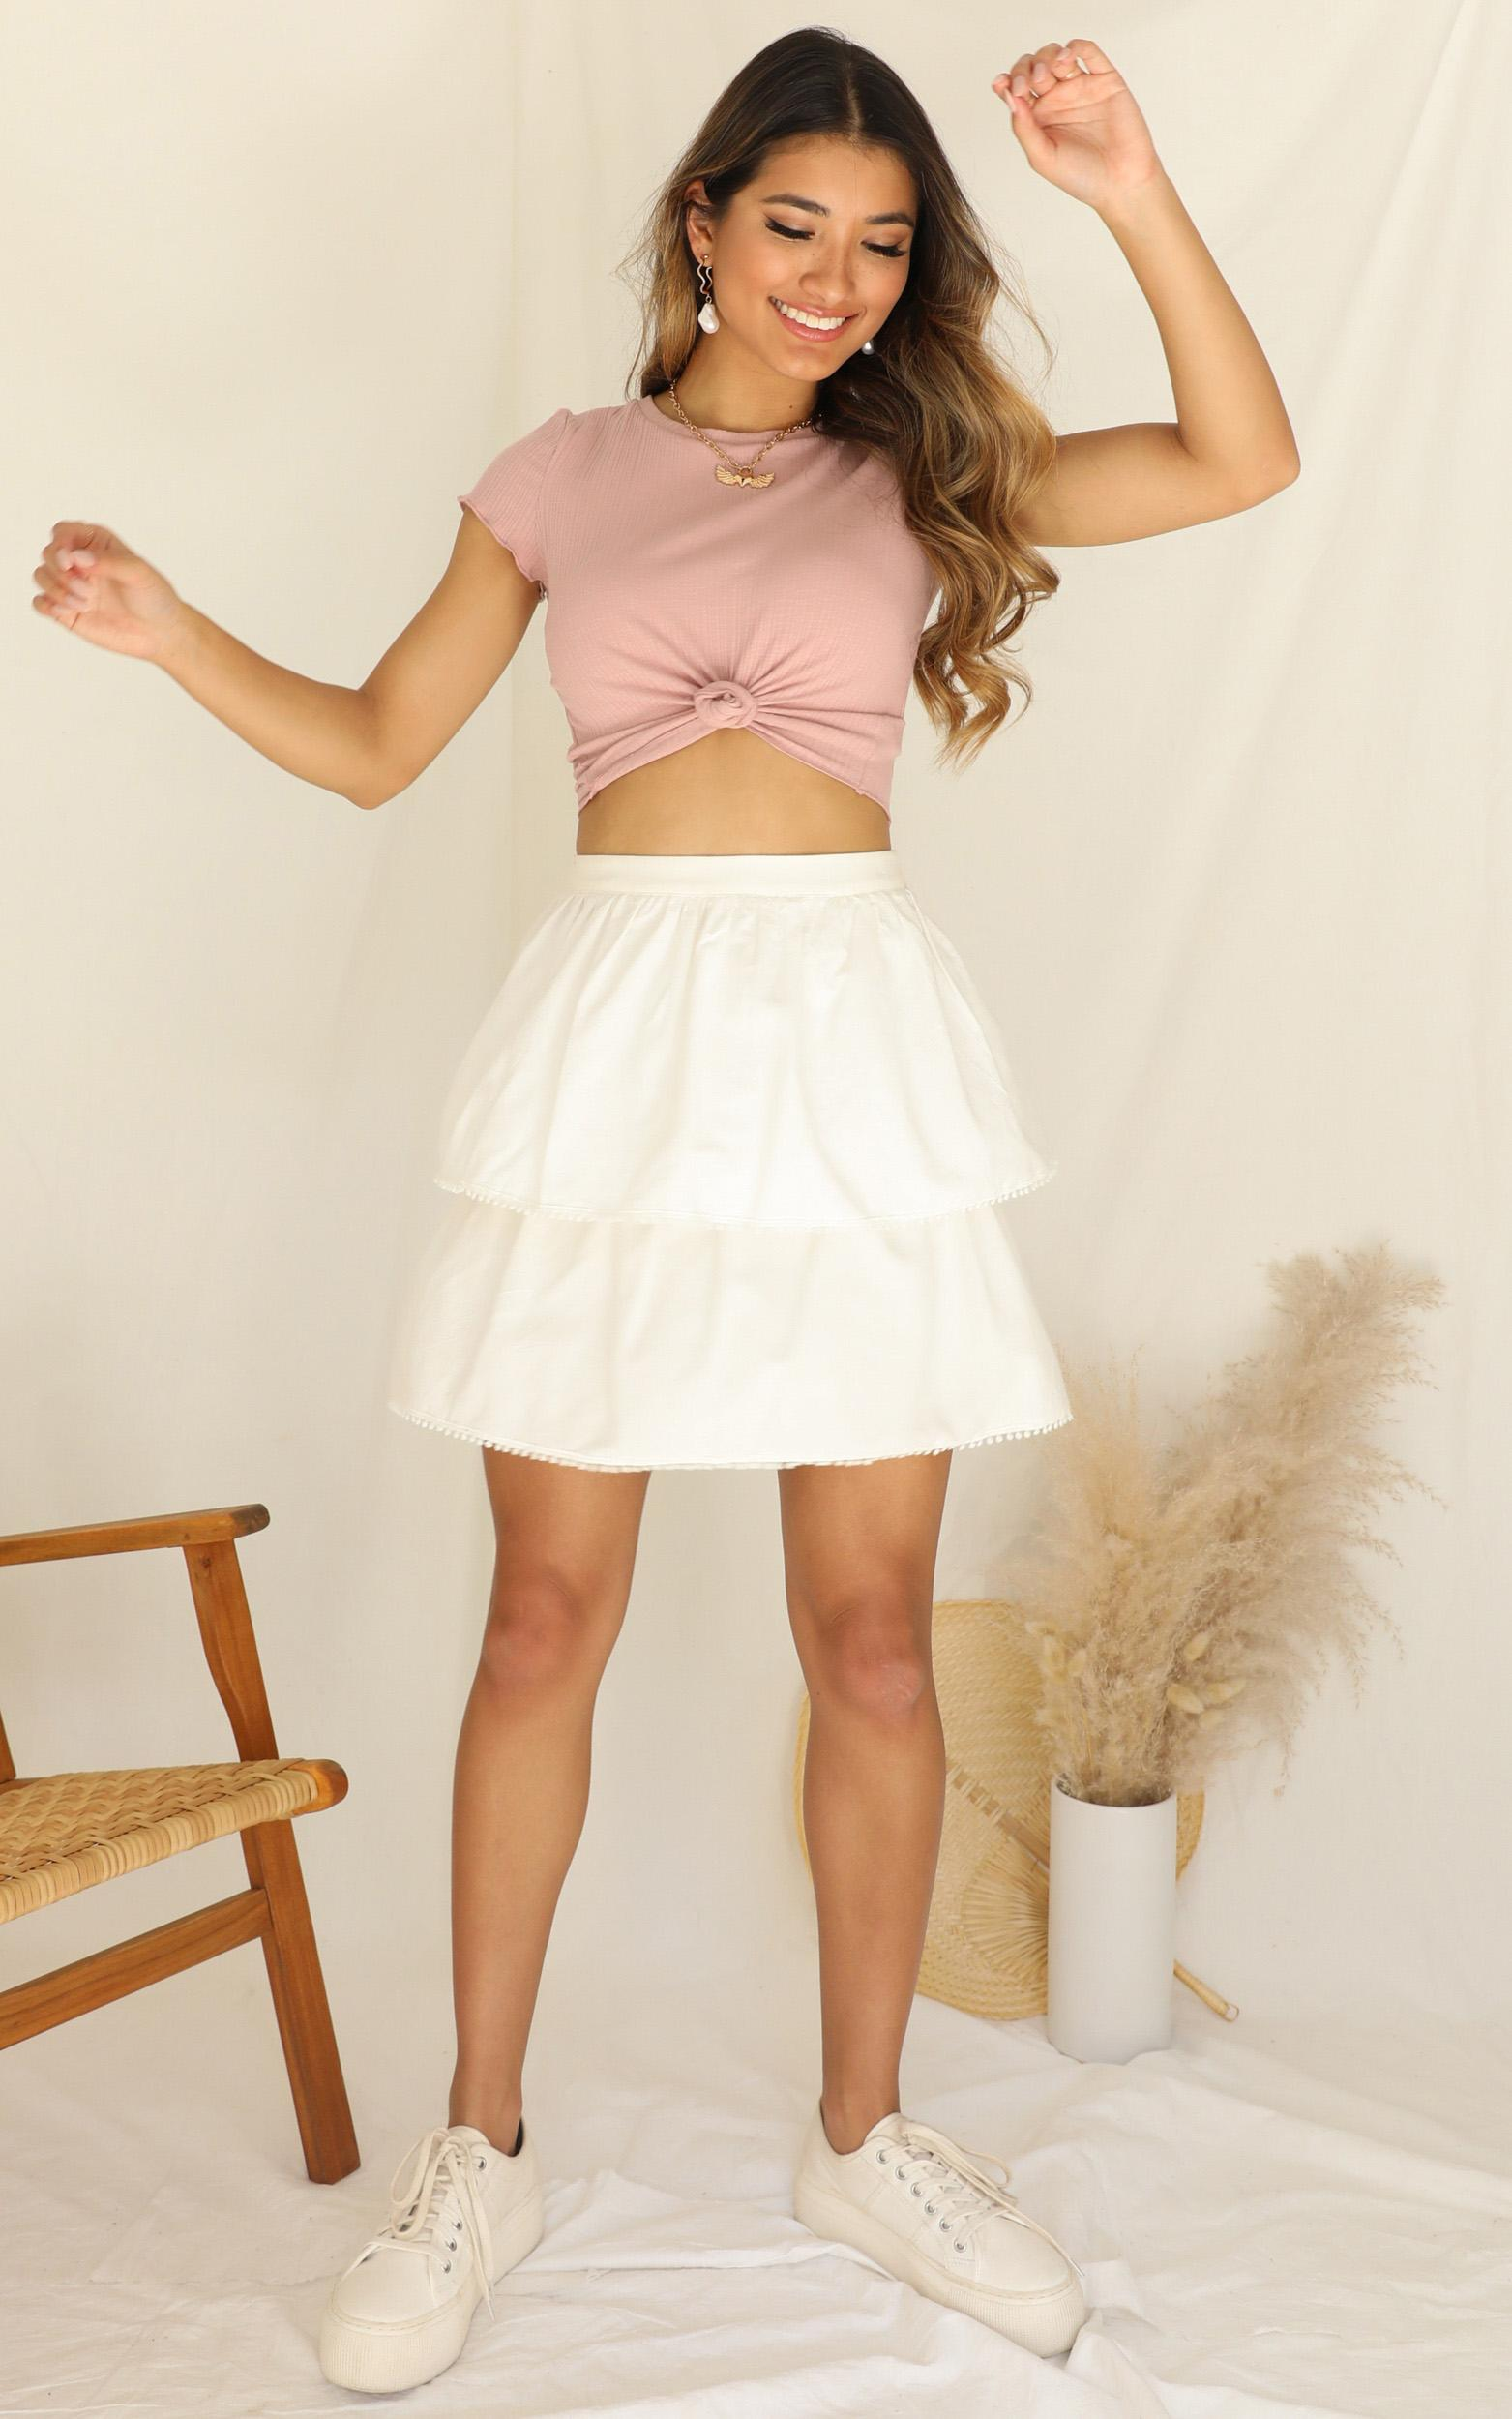 Catch The Breeze skirt in white - 20 (XXXXL), White, hi-res image number null